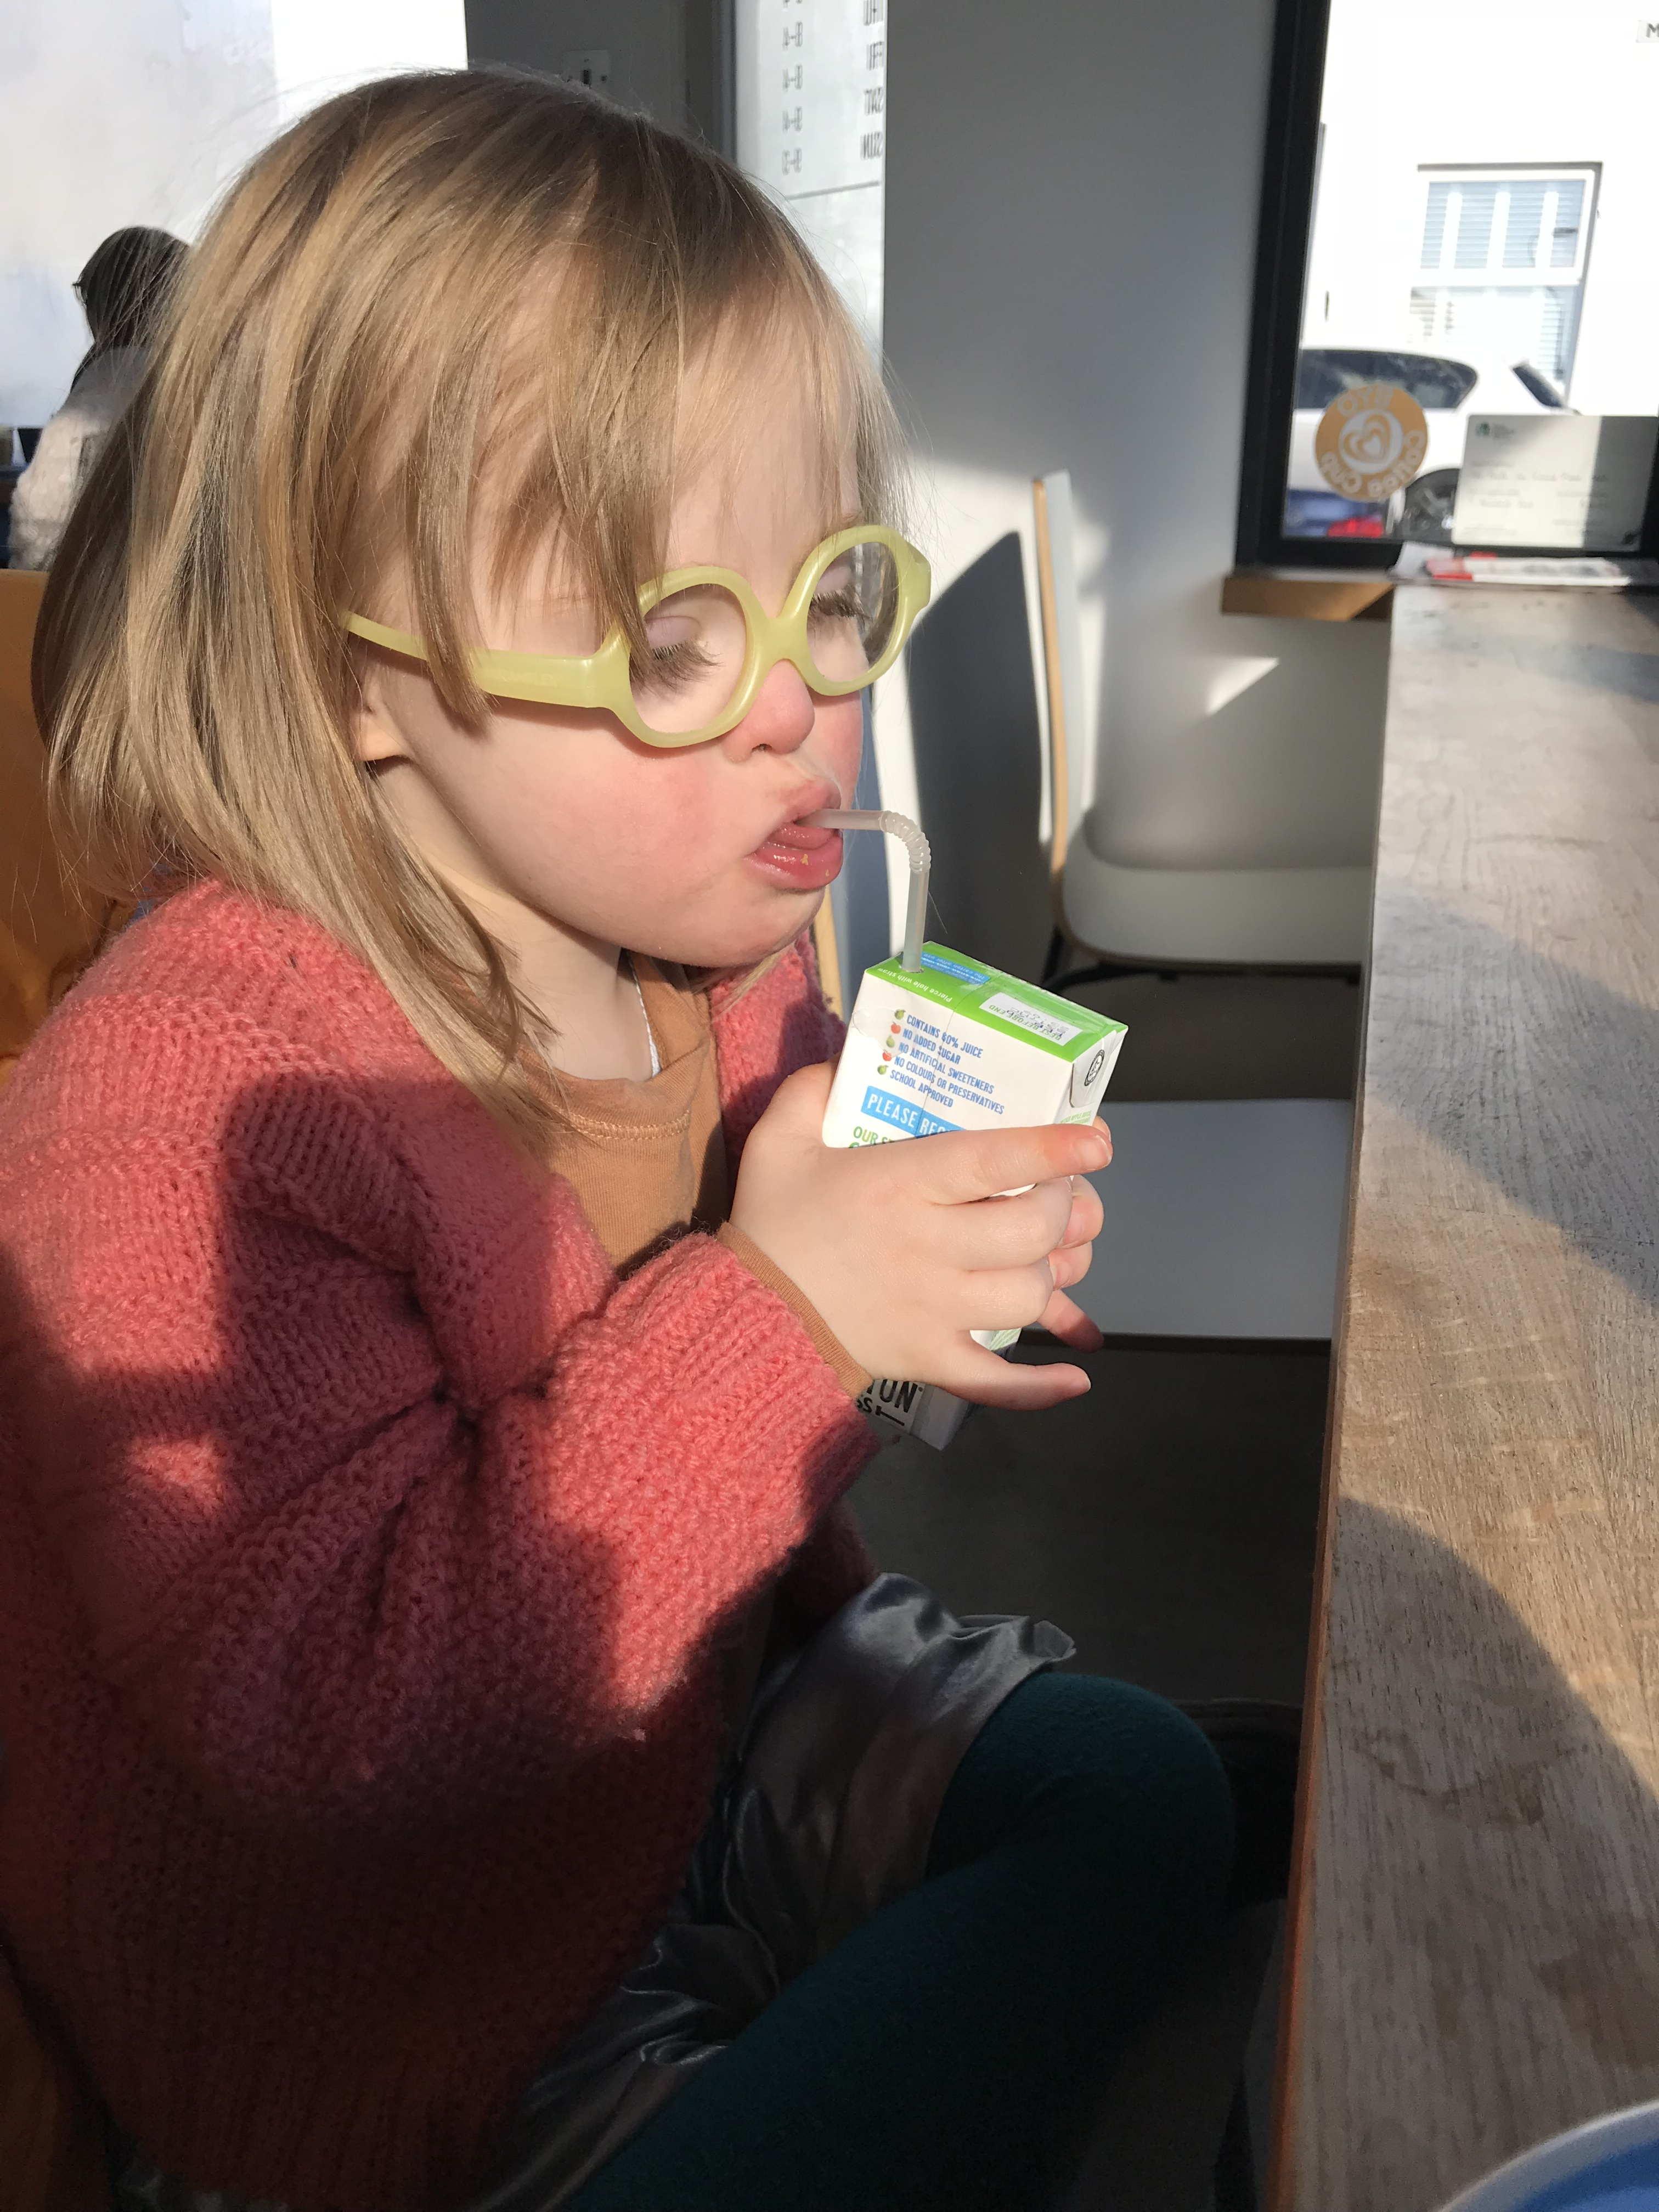 Audrey drinks her juice from a straw